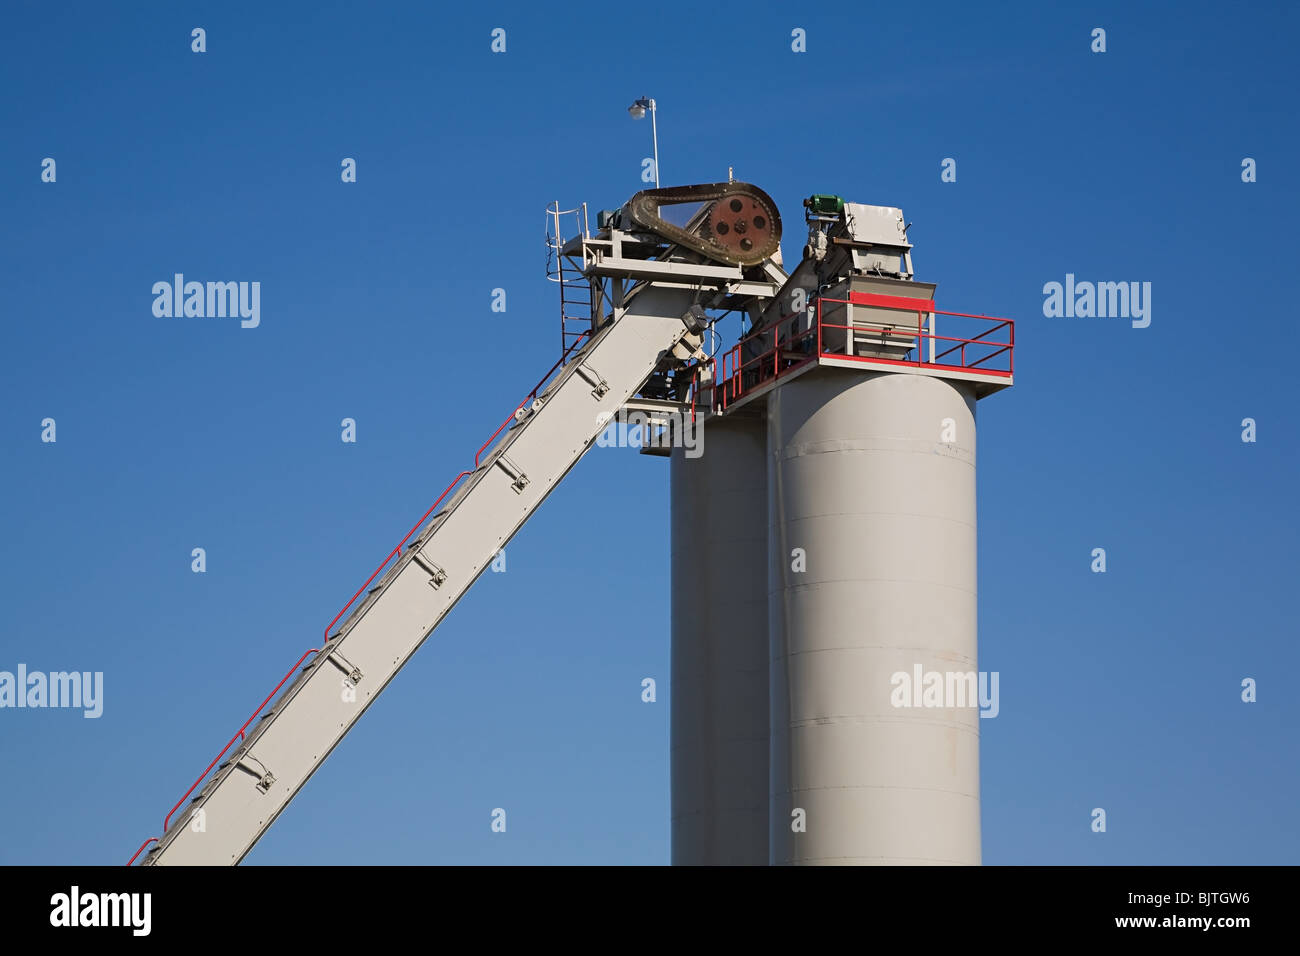 Storage tank and conveyor - Stock Image